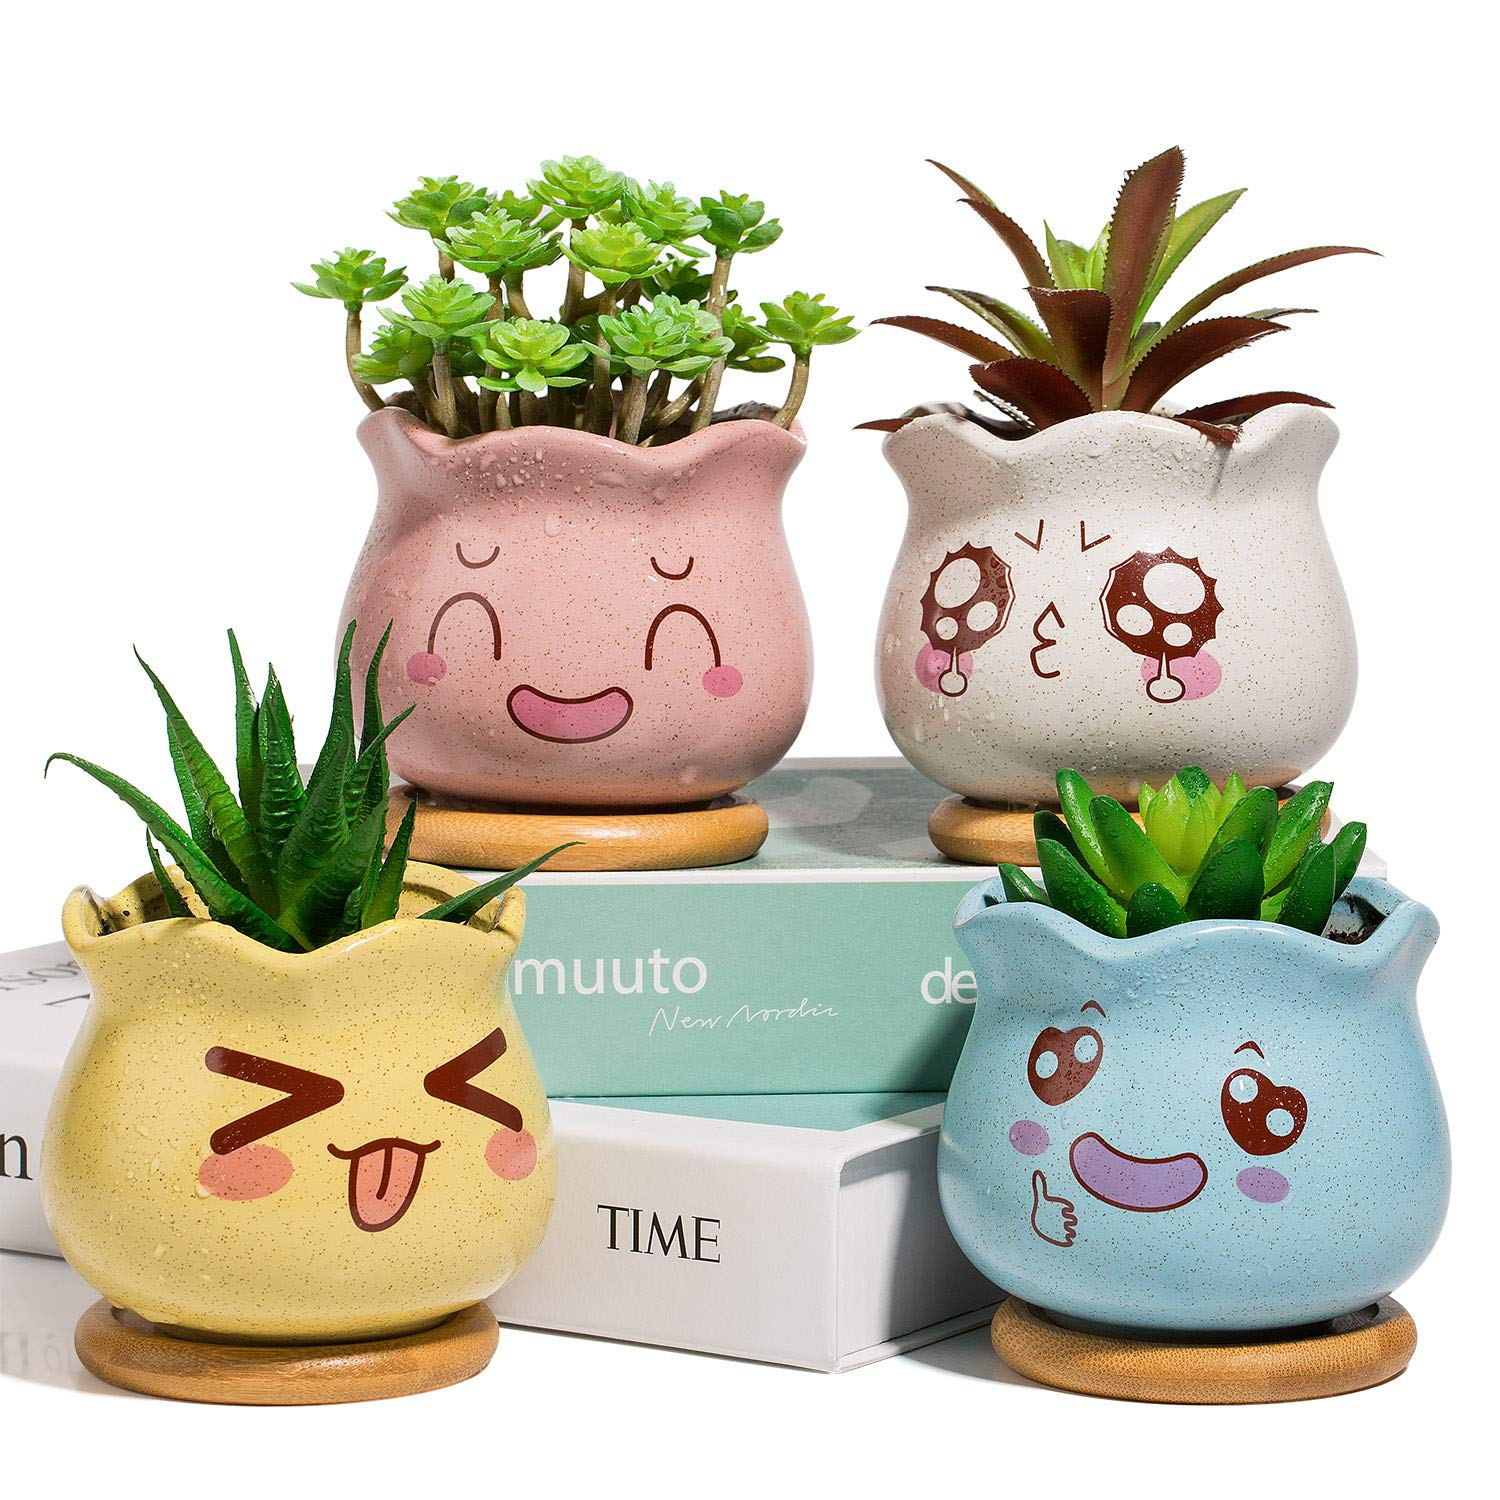 Yangbaga 3.5inch Ceramic Succulent Planter, Succulent Pots and Cactus Pot with Bamboo Tray and Drainage Hole for Home and Office Decoration, Facial Expression Design, Pack of 4